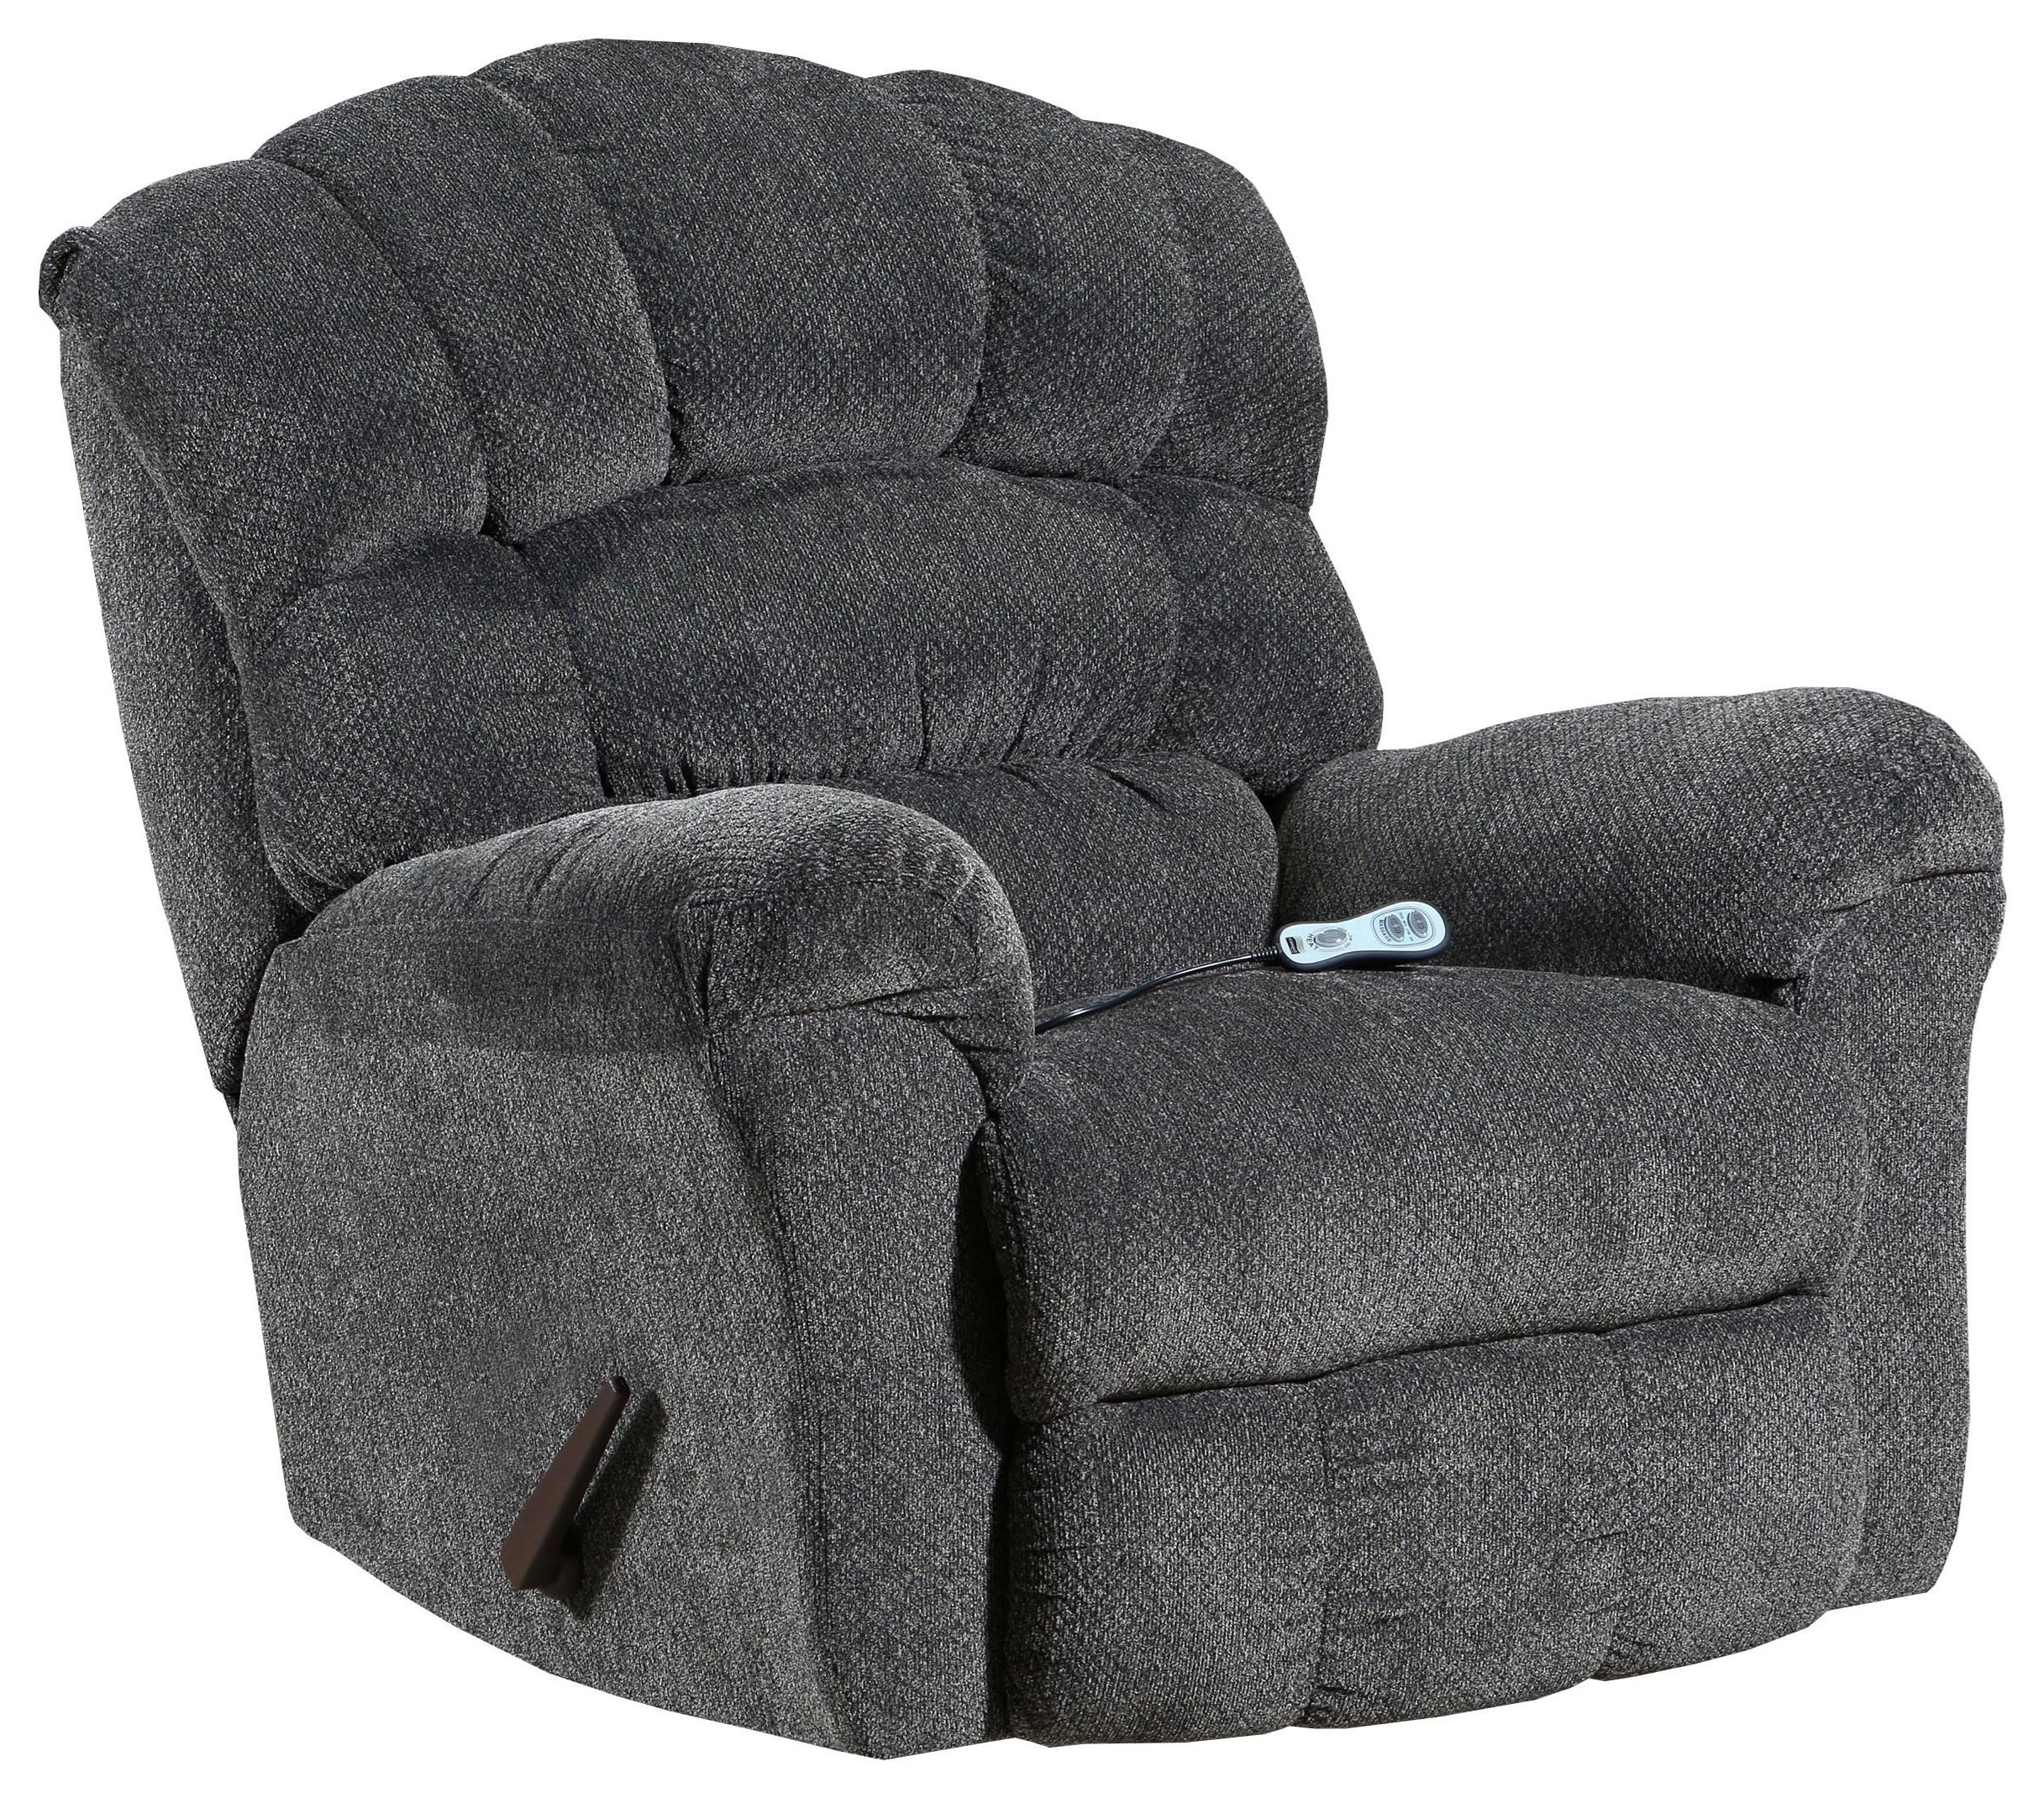 Recliner with Heat and Massage